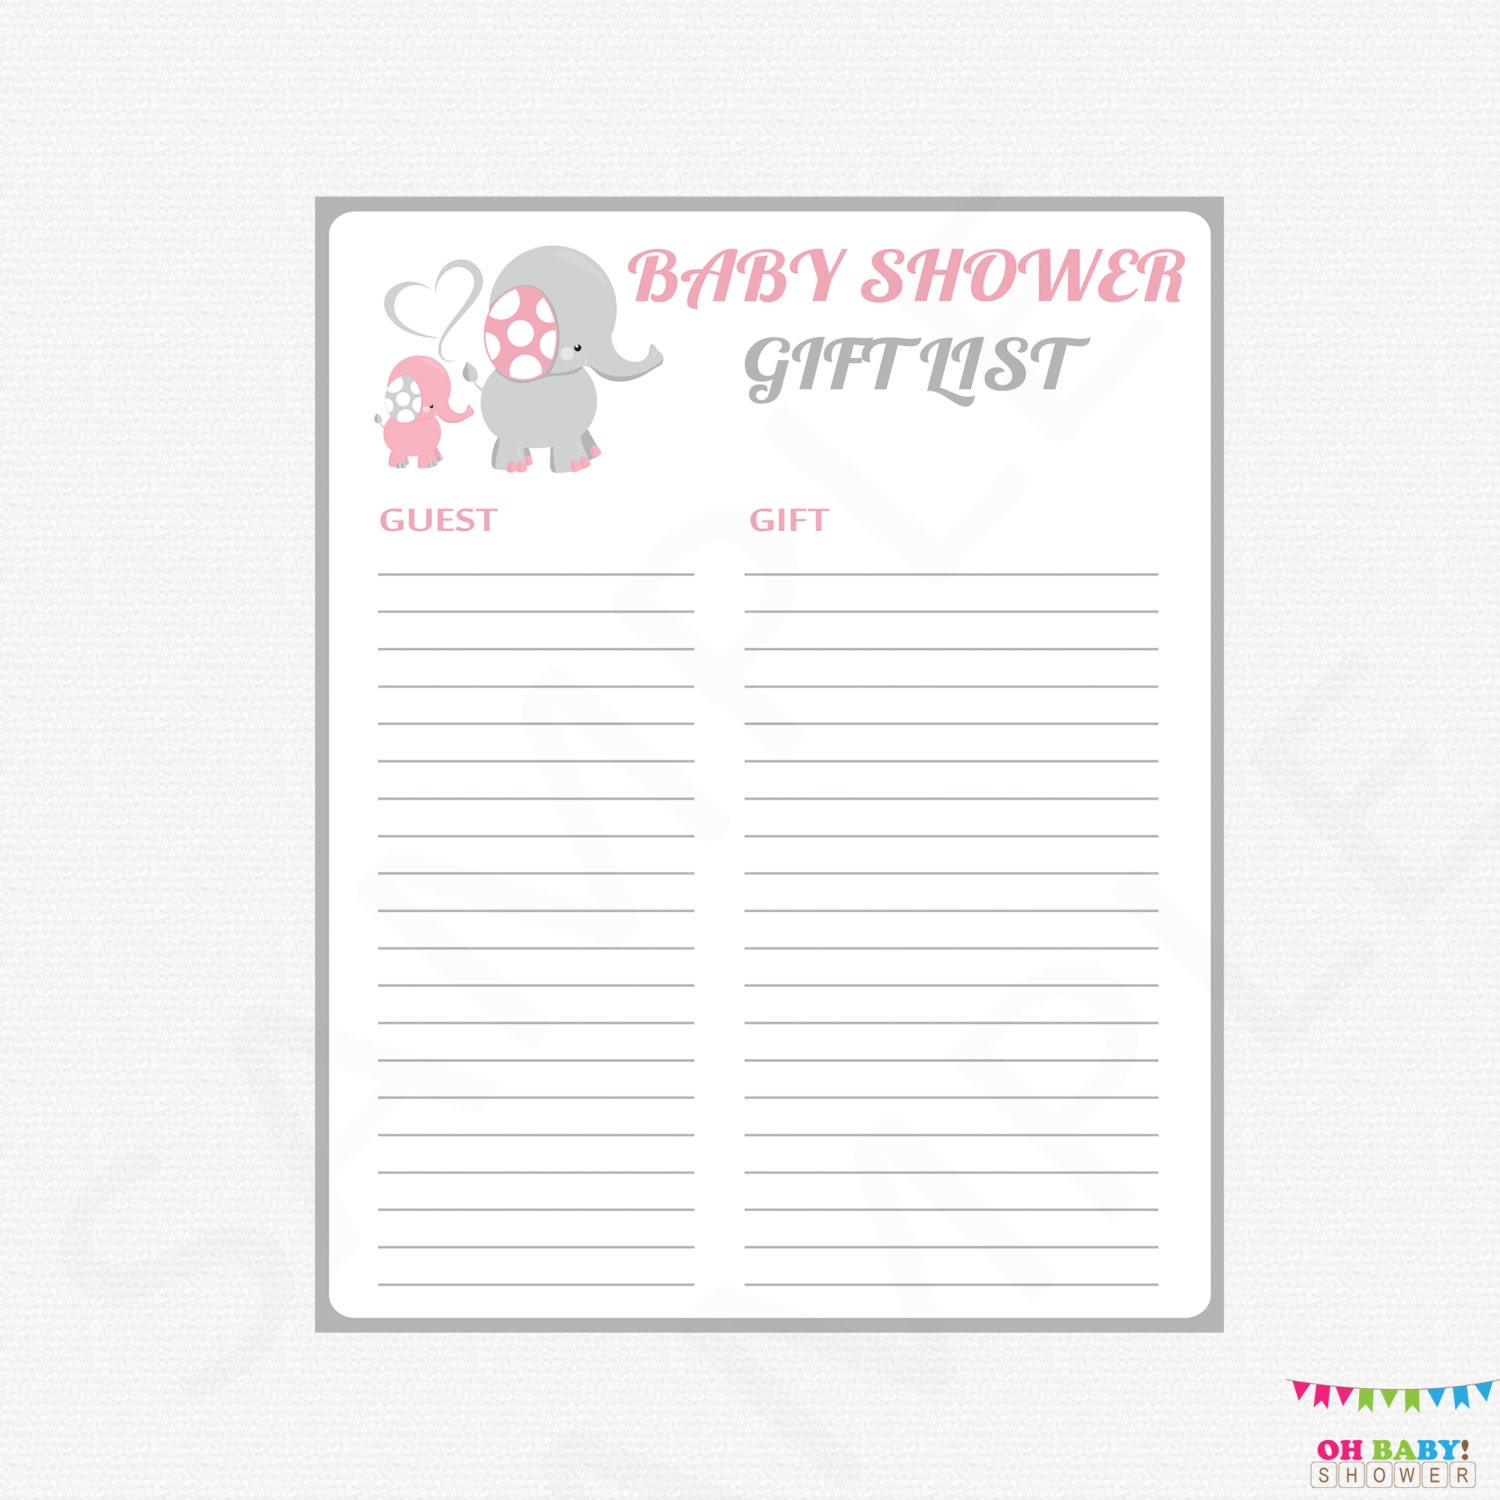 shower gift list  etsy, Baby shower